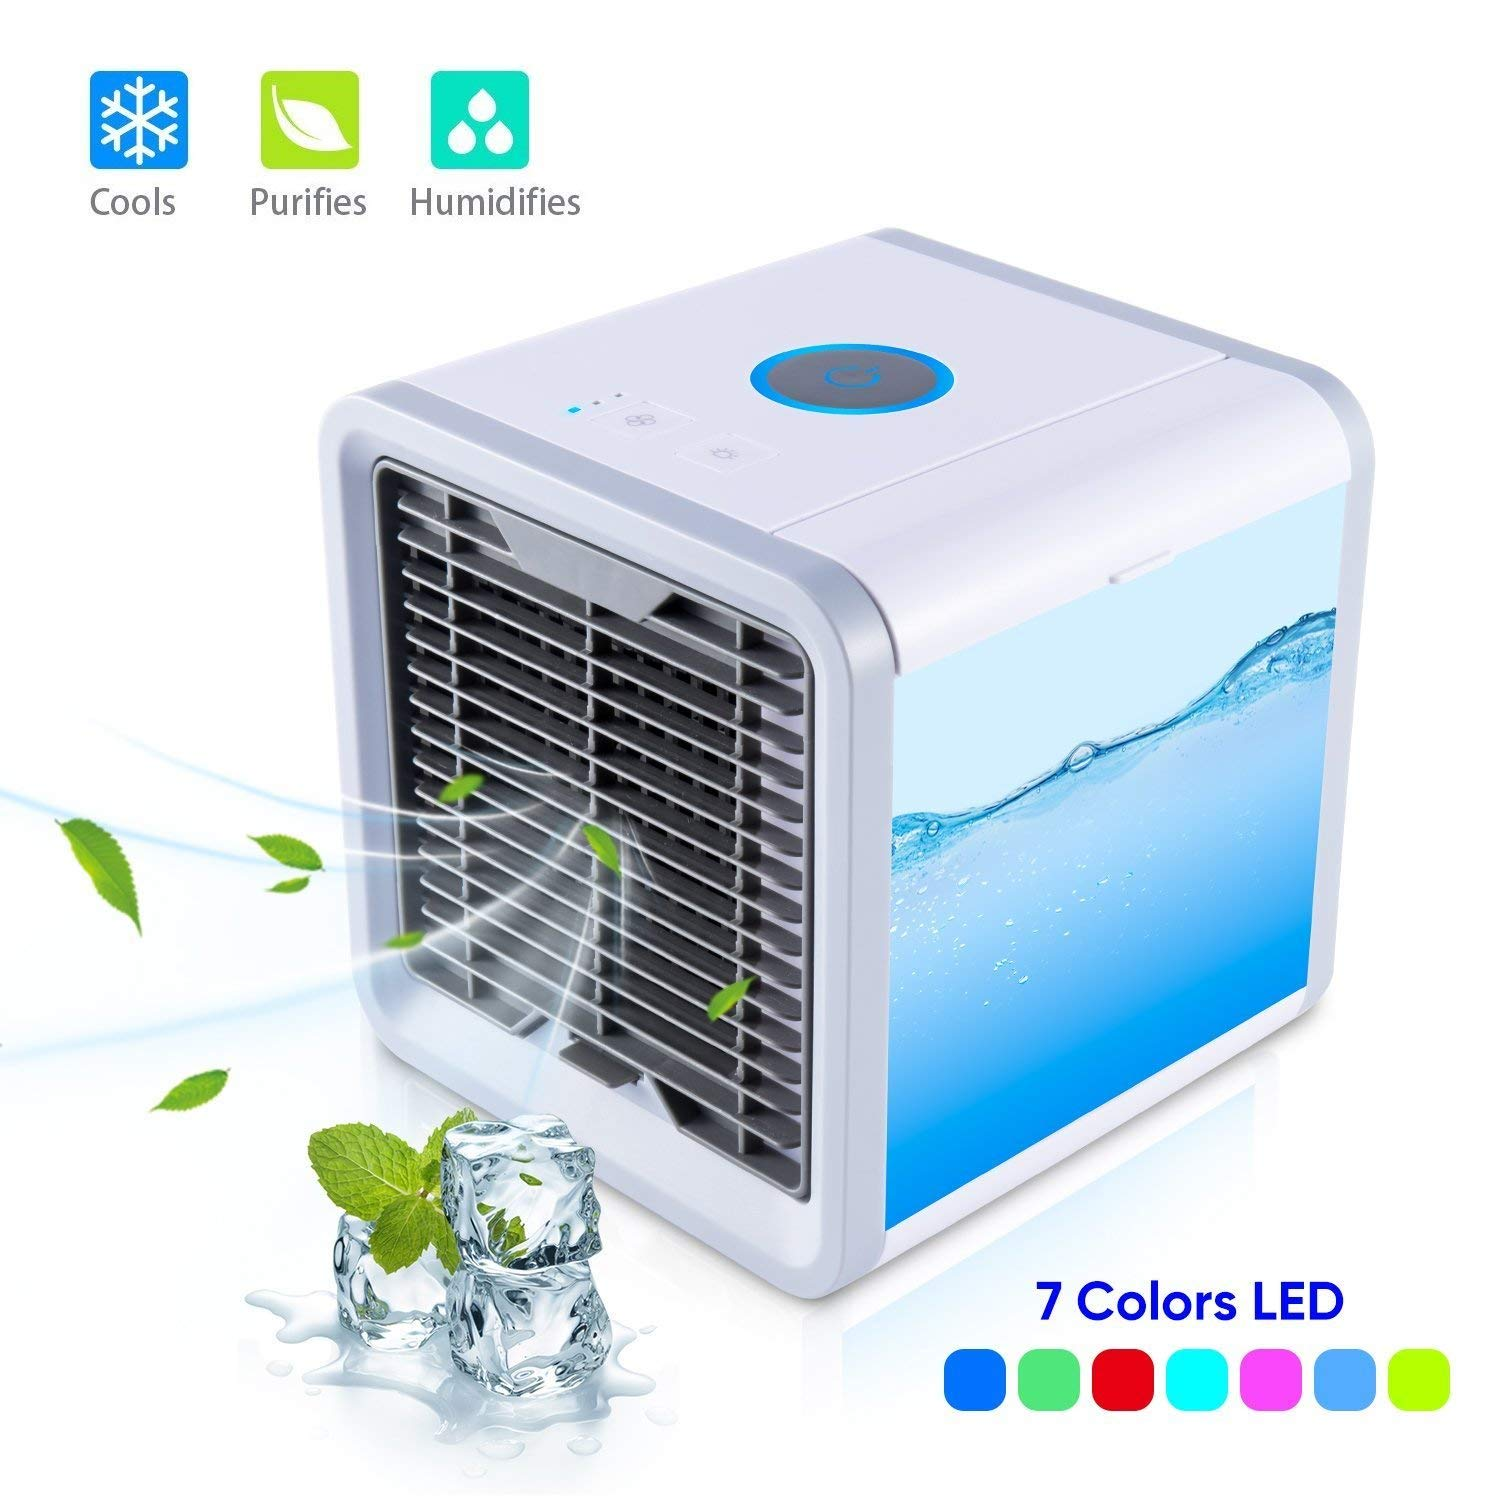 Lionsoul Personal Air Conditioner, Air Personal Space Cooler with Humidifier and Air Purifier USB Mini Portable Air Conditioner